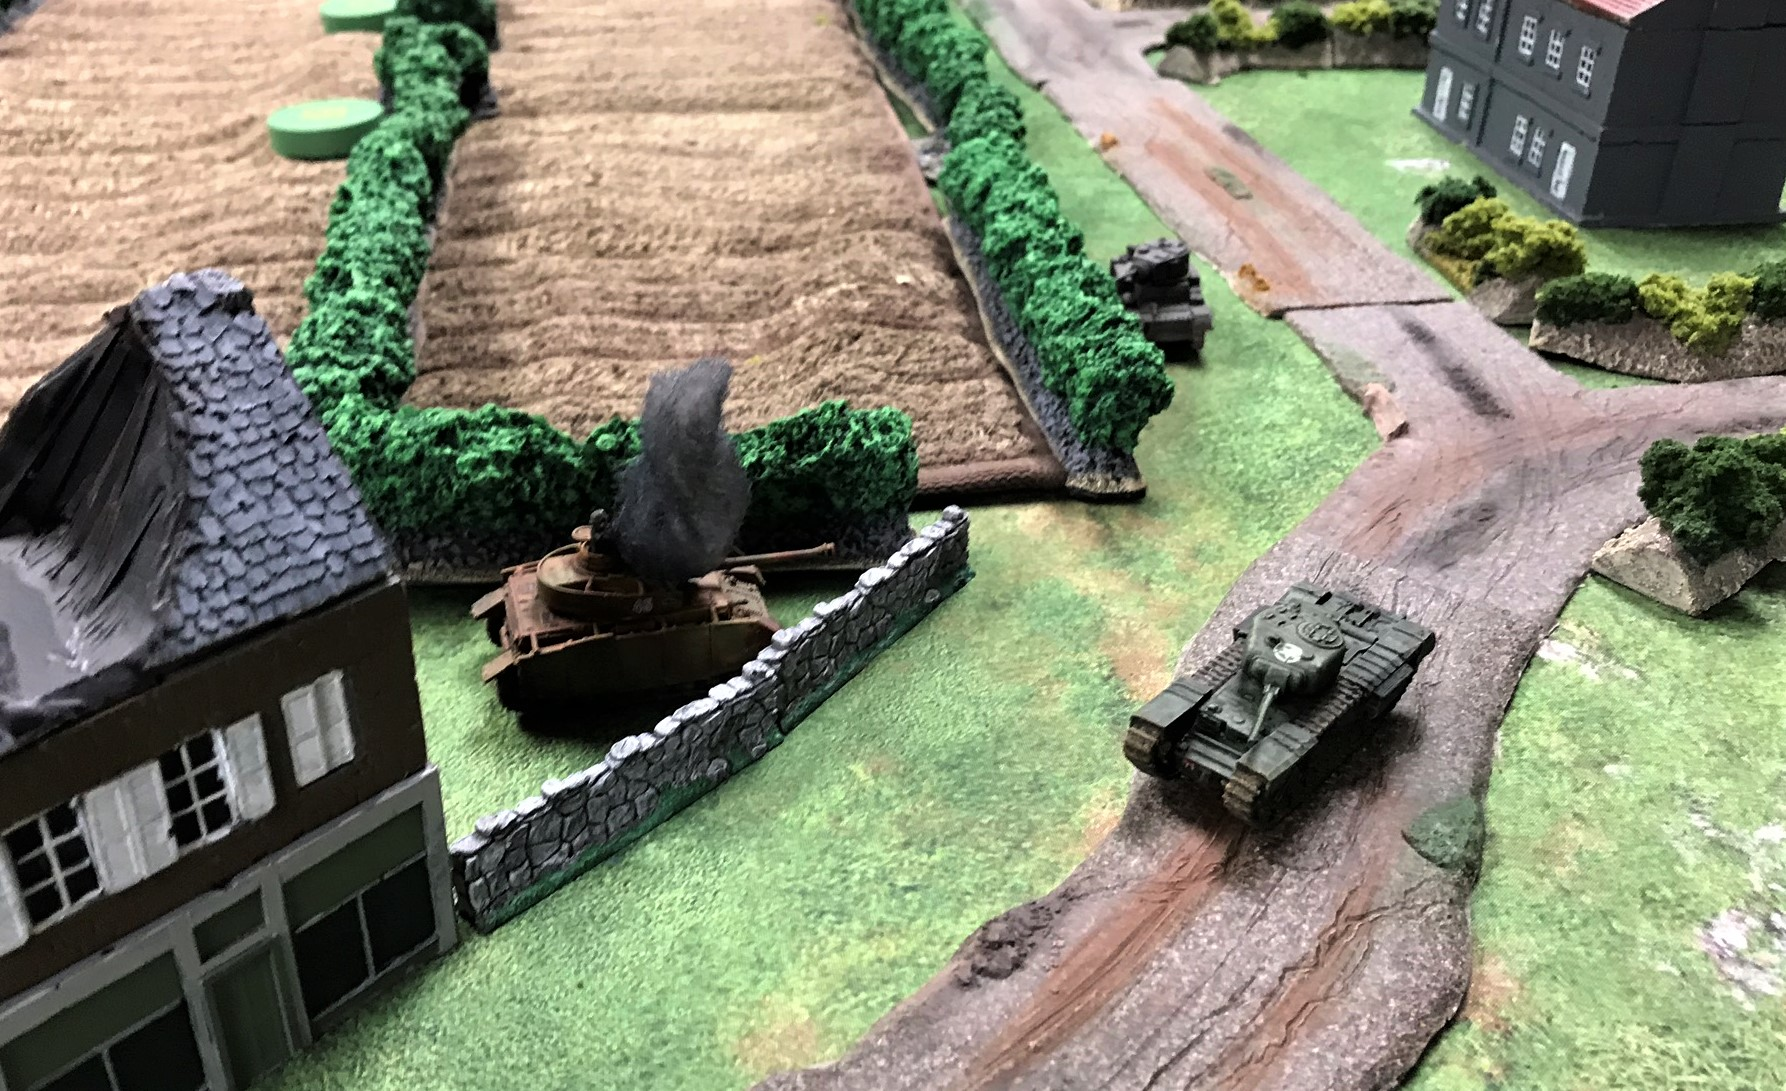 2 Churchill takes out Pzkw IVH